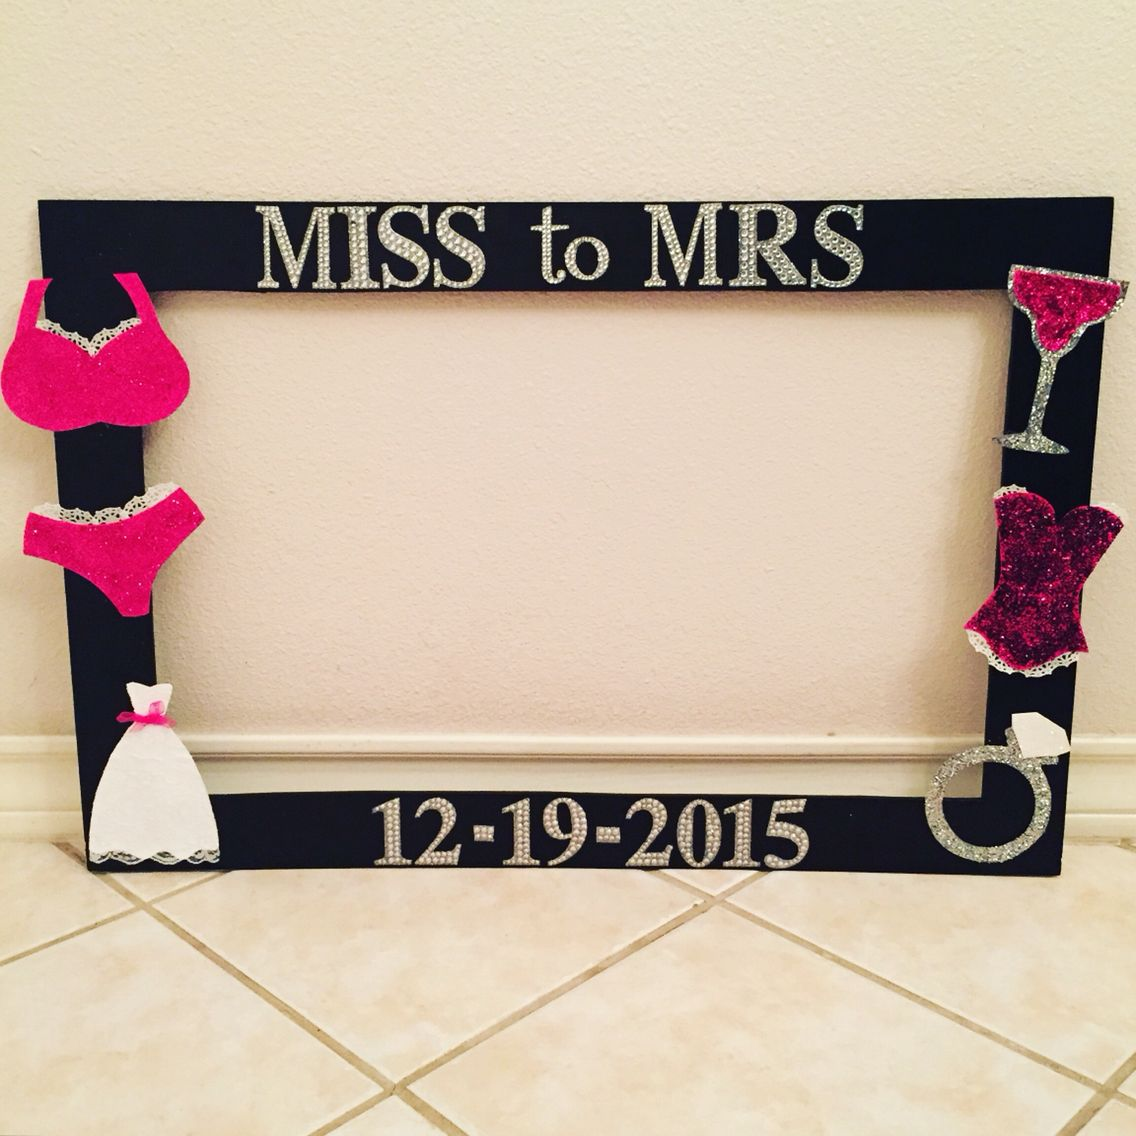 Diy Miss To Mrs Photo Frame Party Photo Frame Bachelorette